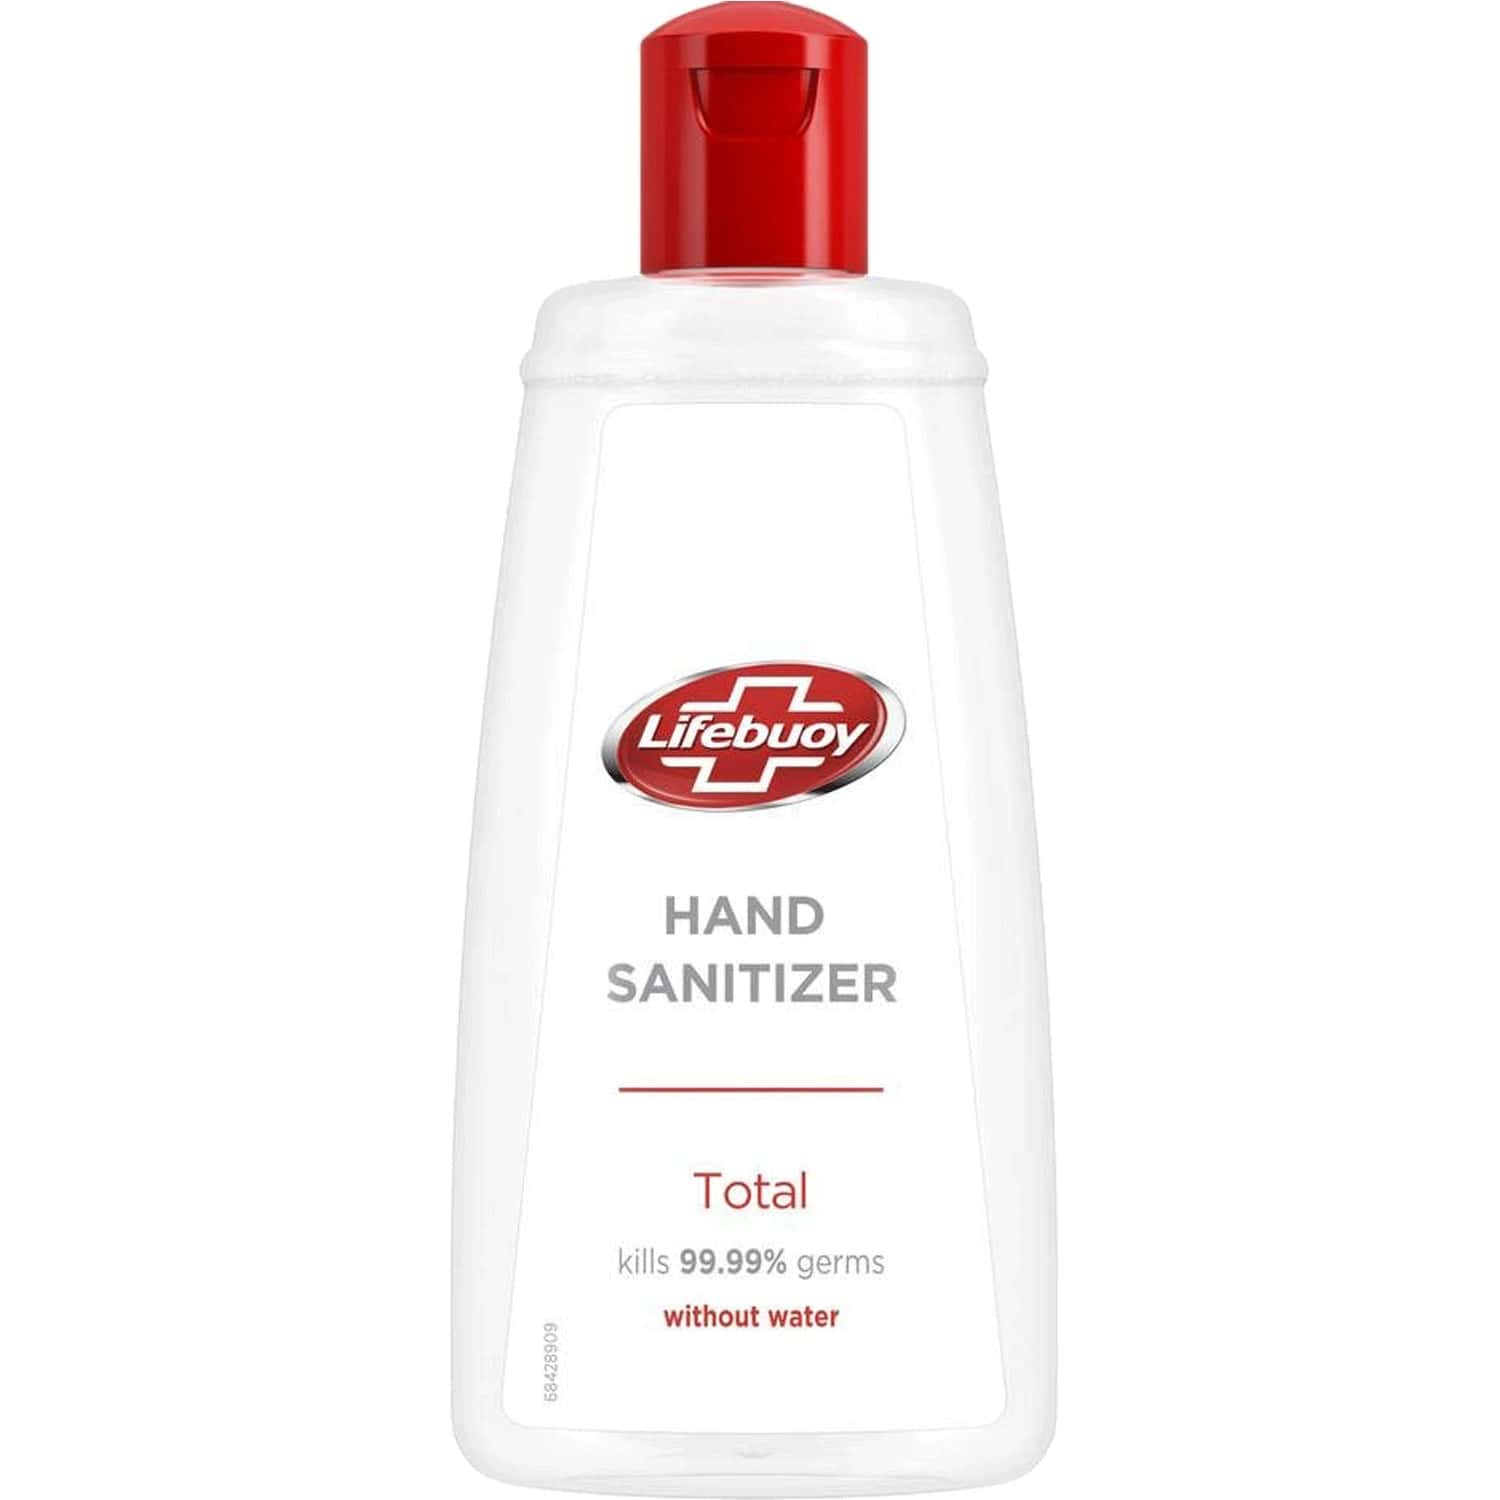 Lifebuoy Total Alcohol Based Germ Protection Hand Sanitizer - 100 Ml